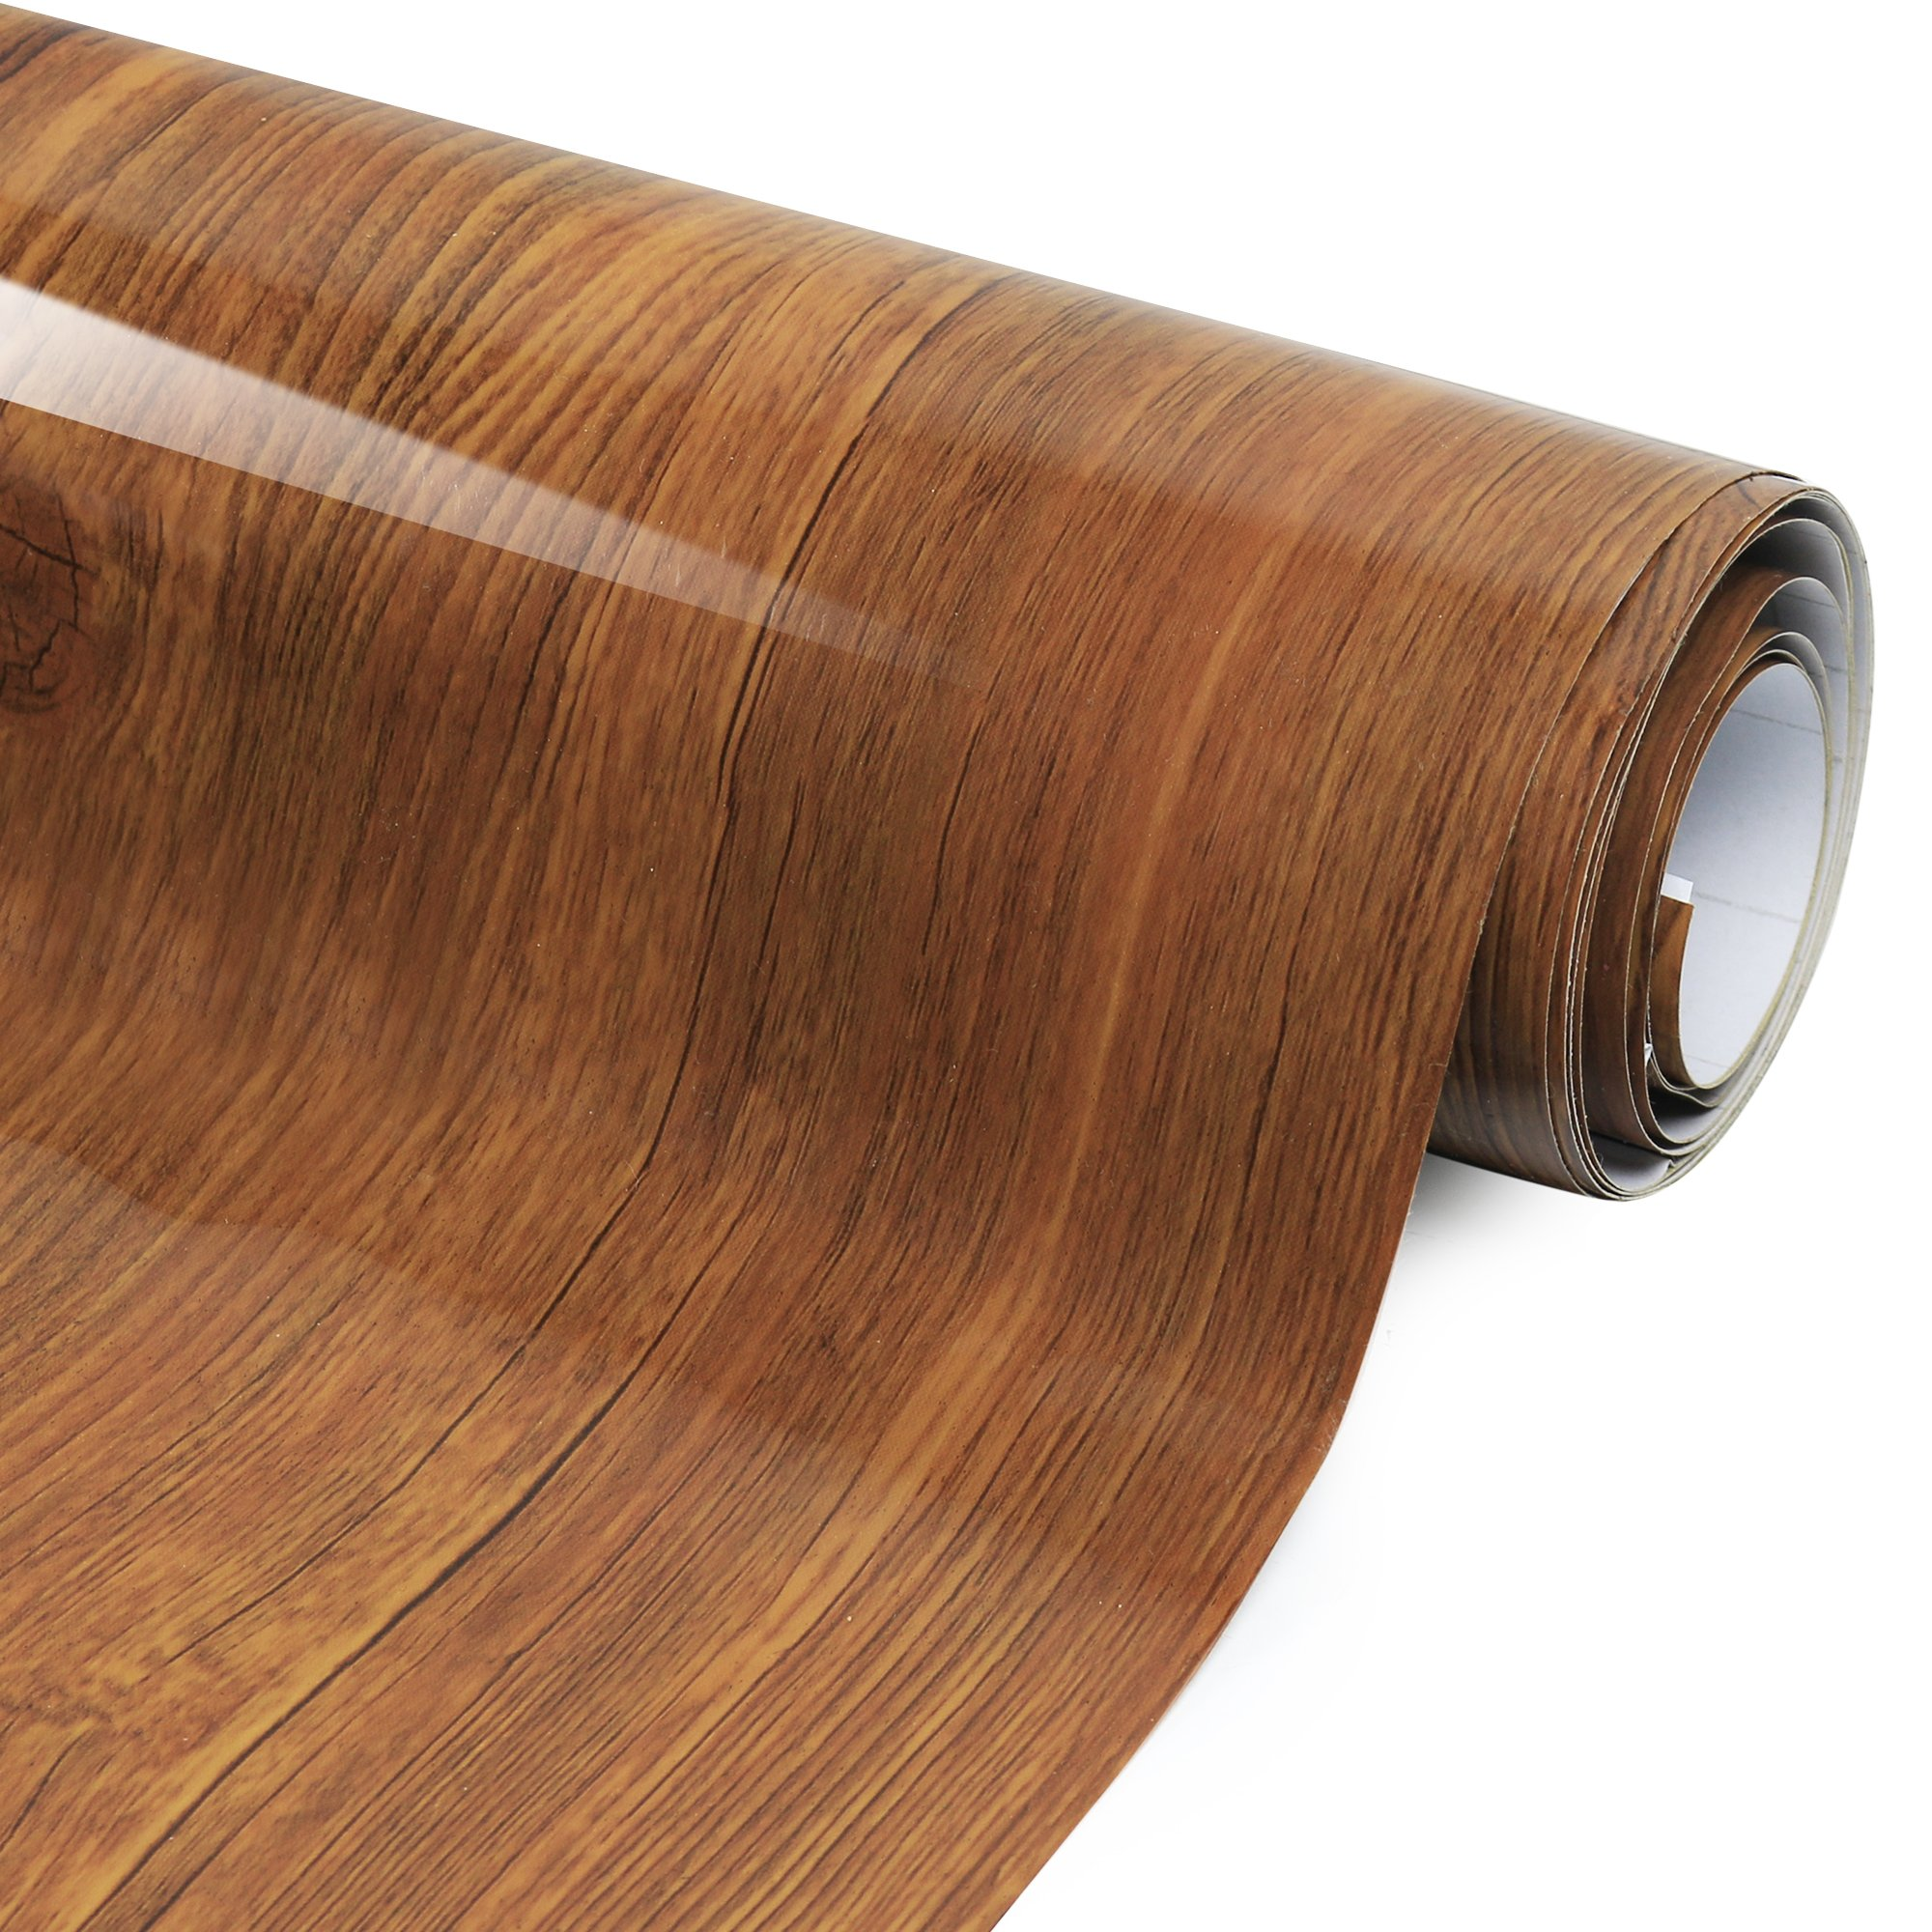 Adhesive Films Wood Grain High Gloss - Economical alternative to rehabilitate your countertops, backsplash and cabinets - (80'')